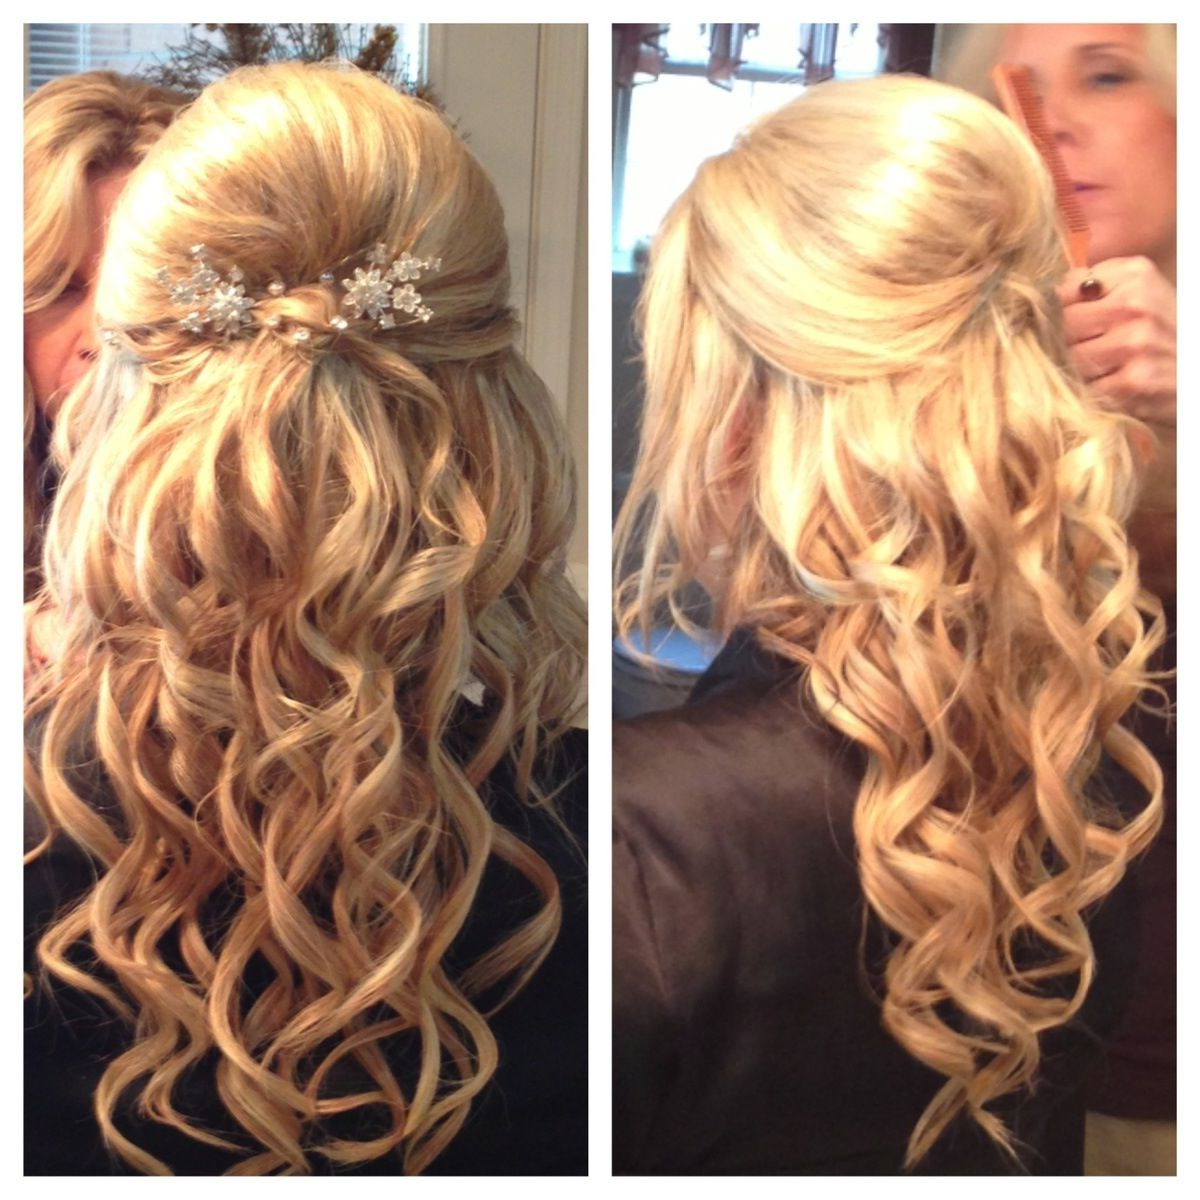 Newest Medium Hairstyles For A Ball In Bump With Curls! (View 9 of 20)